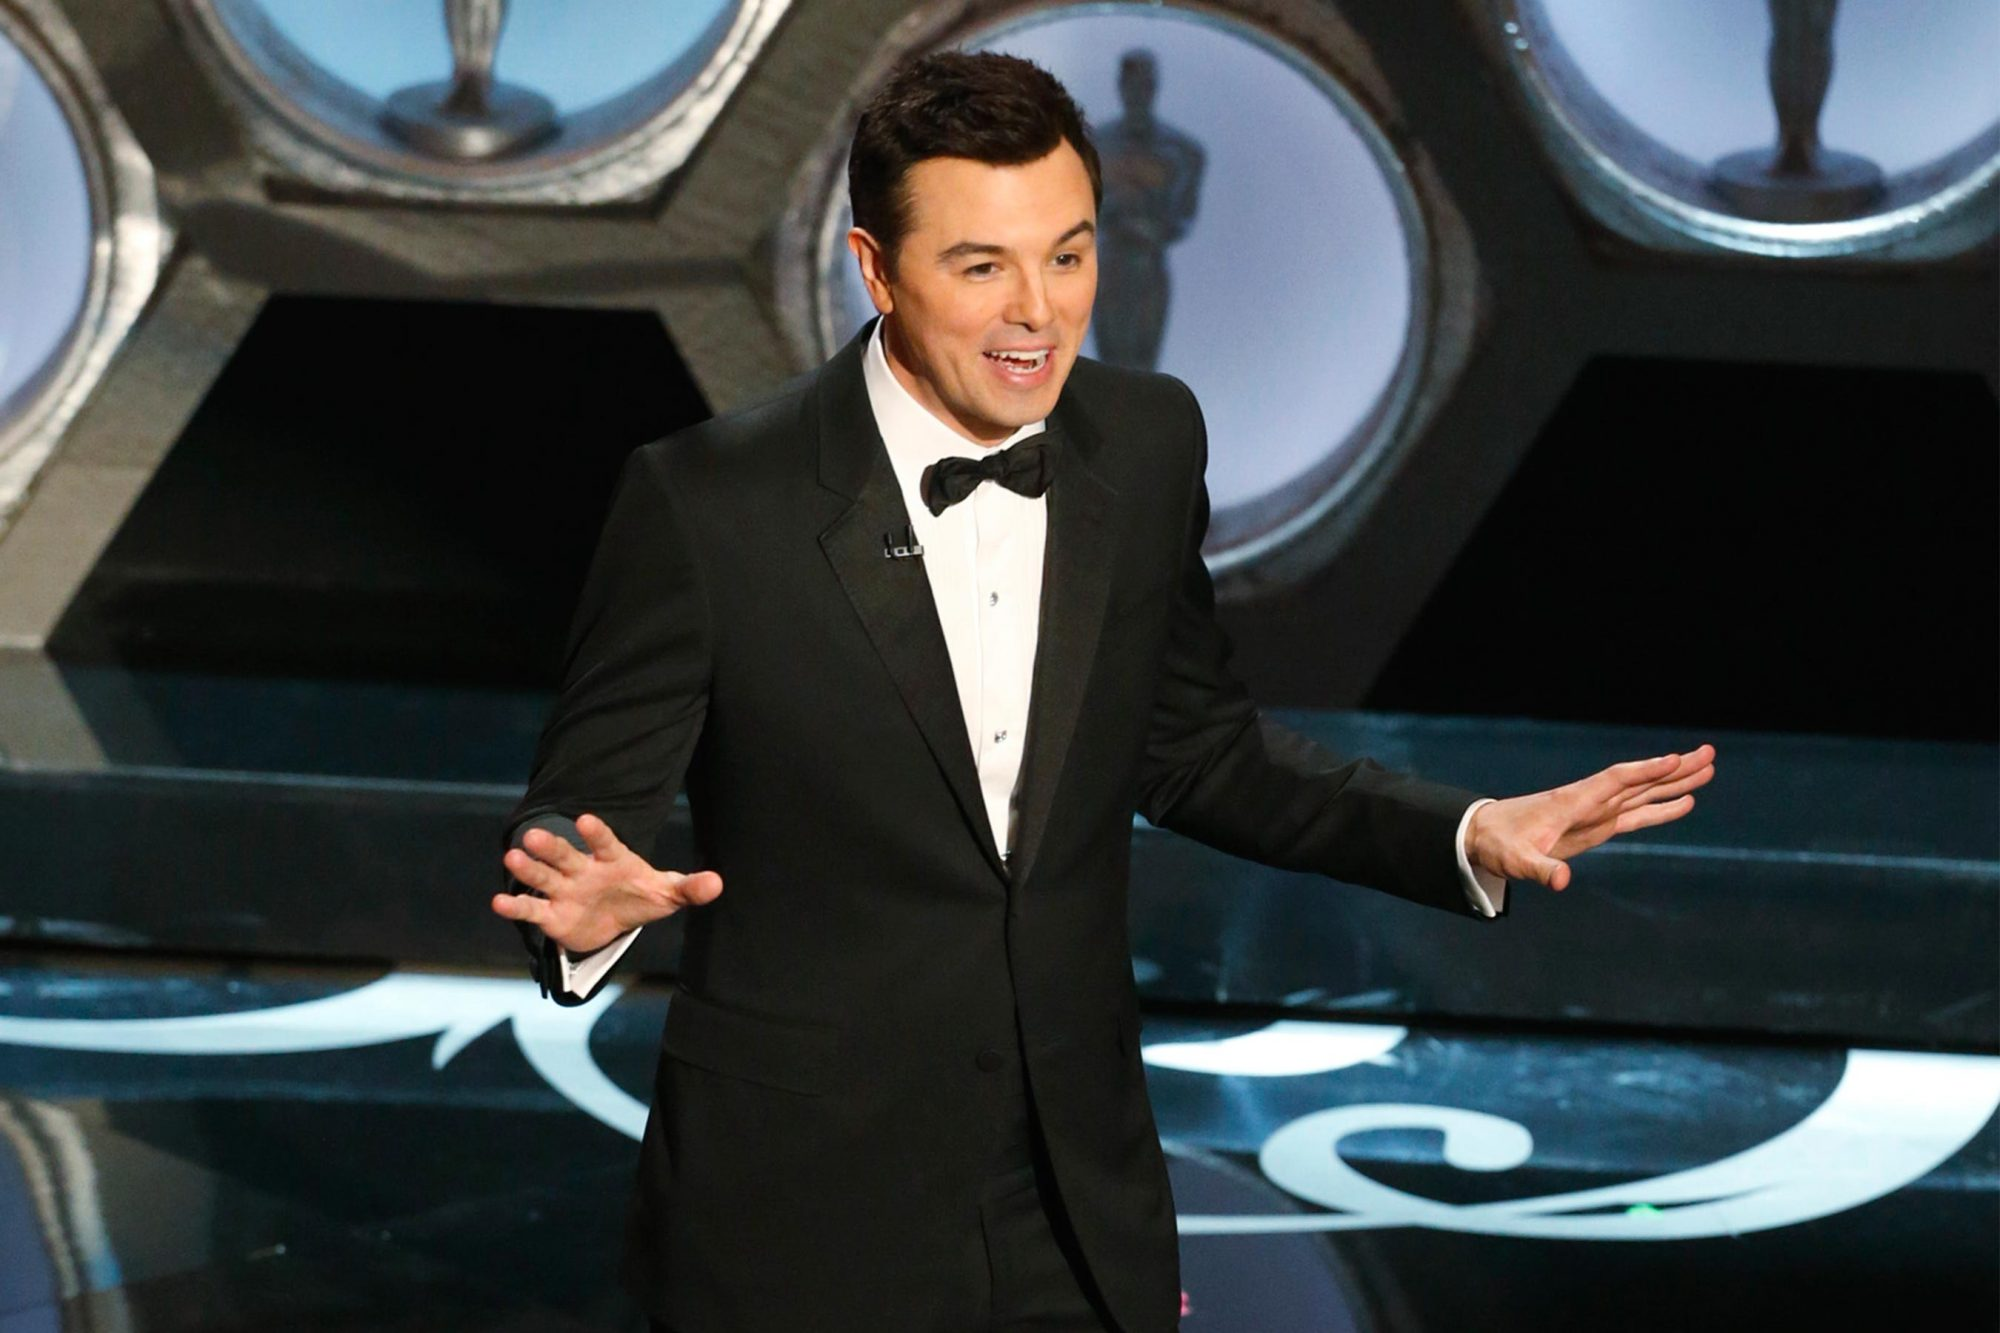 ABC's Coverage Of The 85th Academy Awards